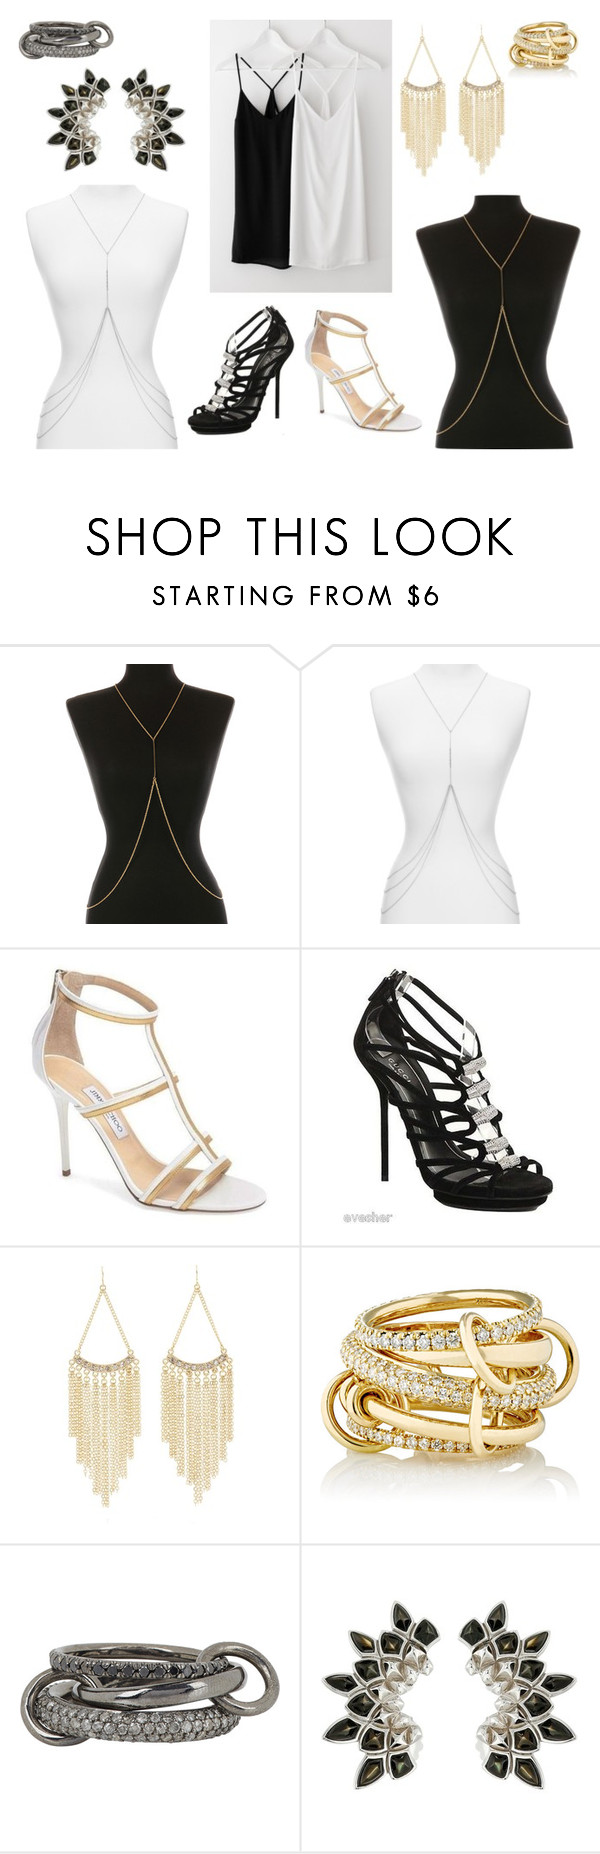 """""""Girls Night Out ~ Best Friends"""" by brenna-grassman ❤ liked on Polyvore featuring Rebecca Minkoff, Jimmy Choo, Gucci, Charlotte Russe, SPINELLI KILCOLLIN, Stephen Webster, girlsnight and BestFriends"""